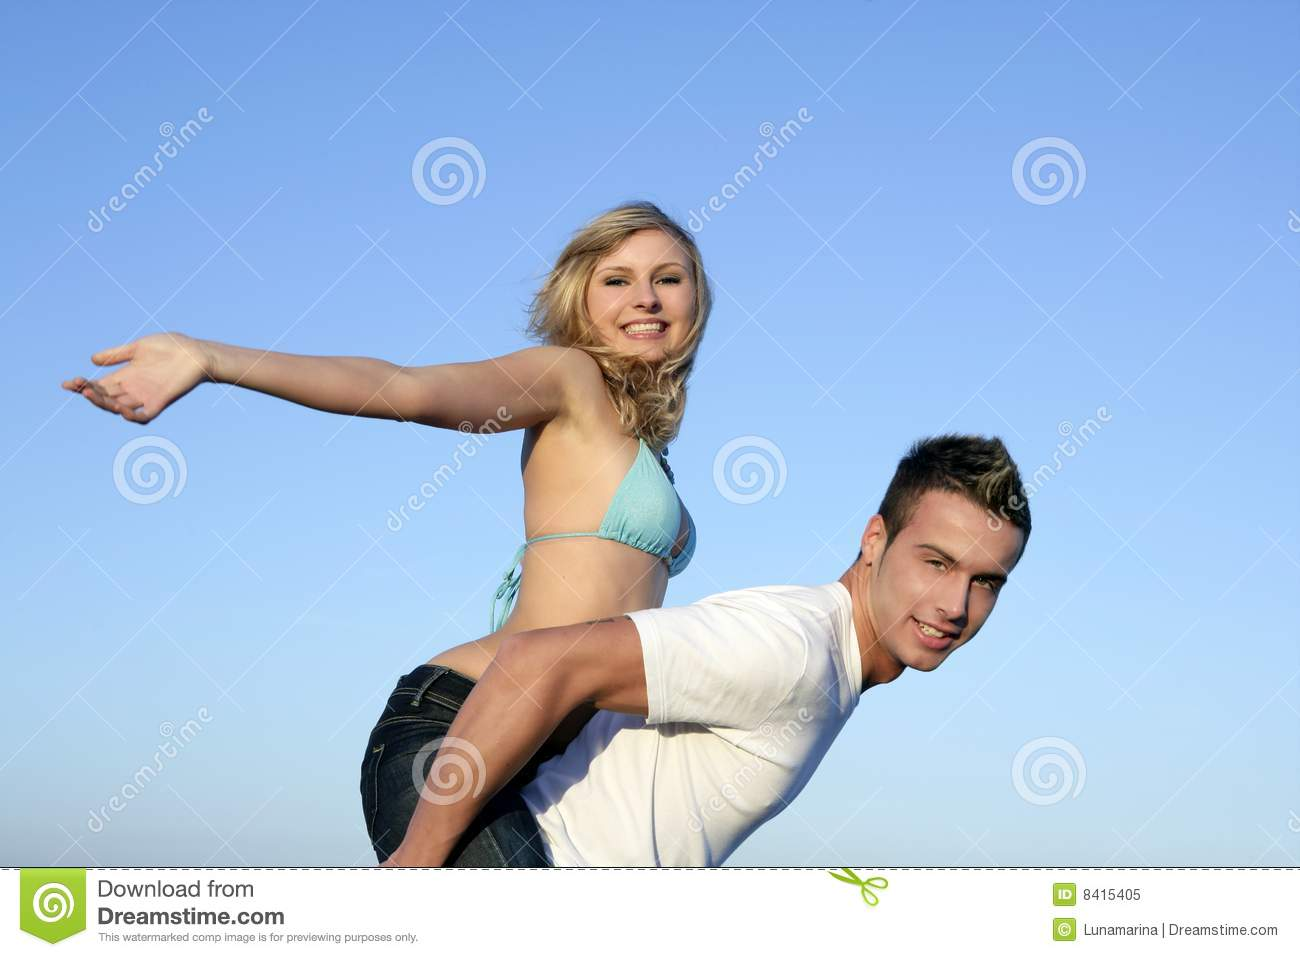 Sorry, young couple play on beach that's something